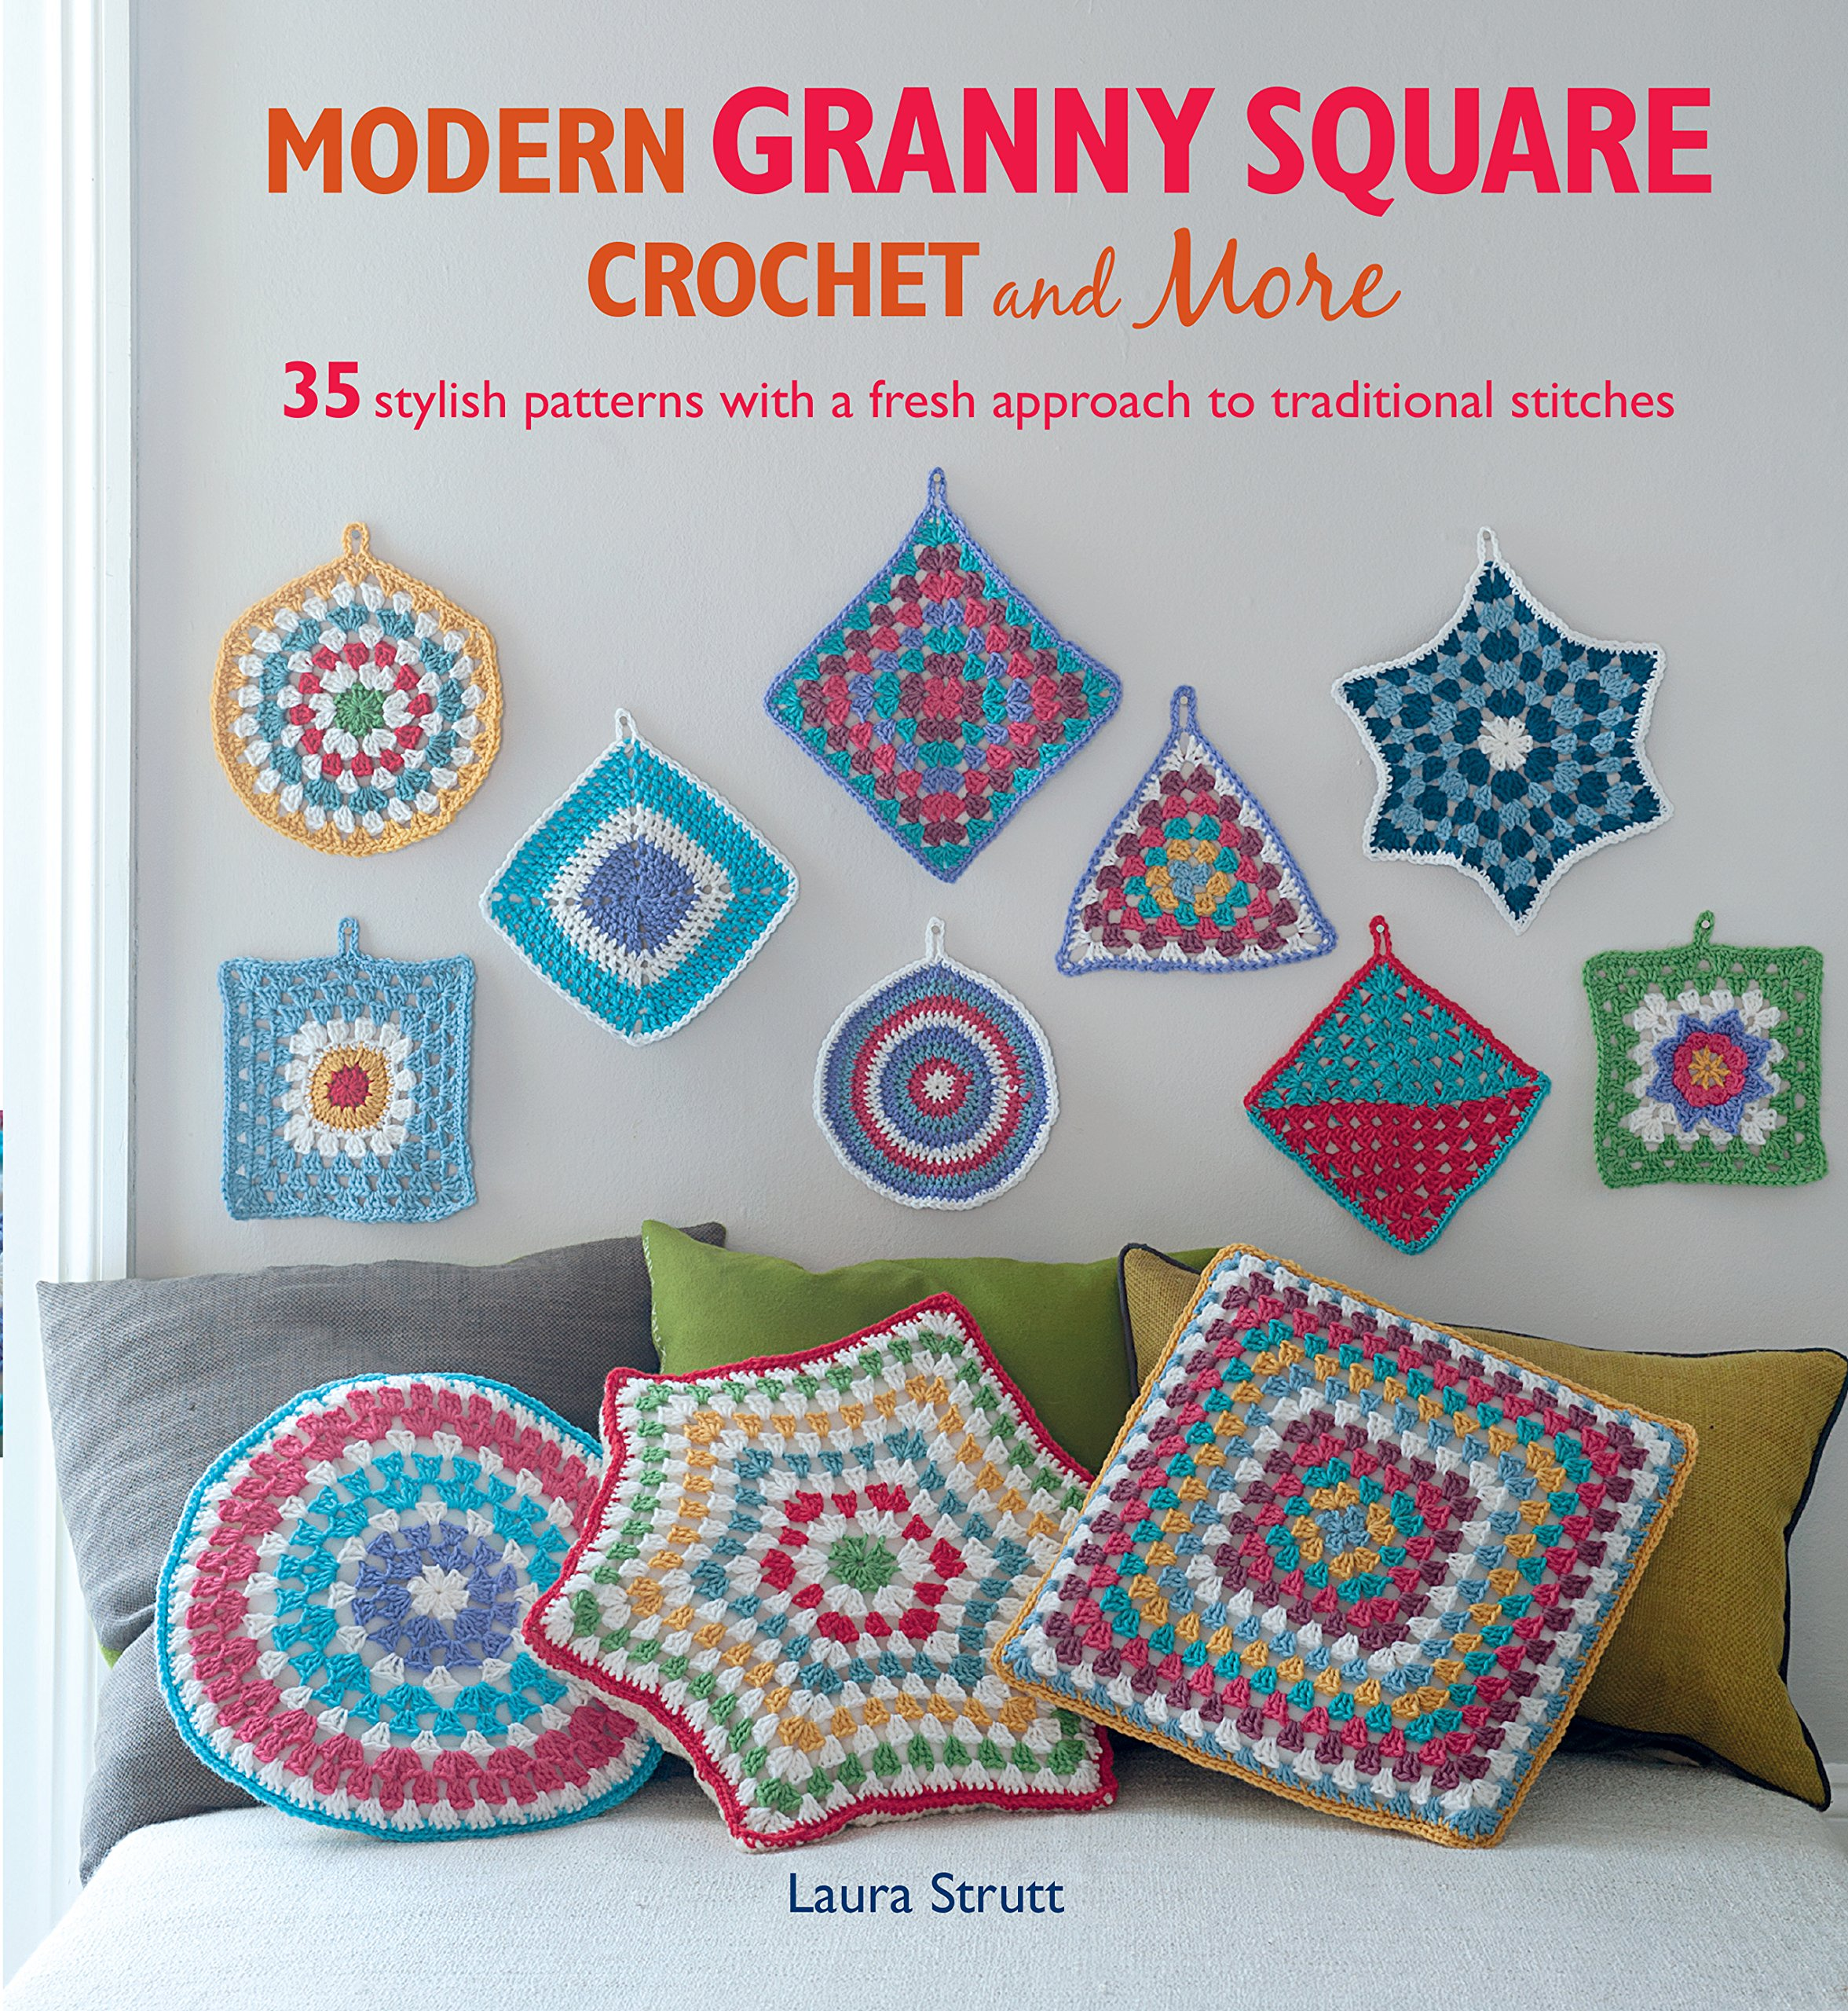 Modern Granny Square Crochet and More: 35 stylish patterns with a ...